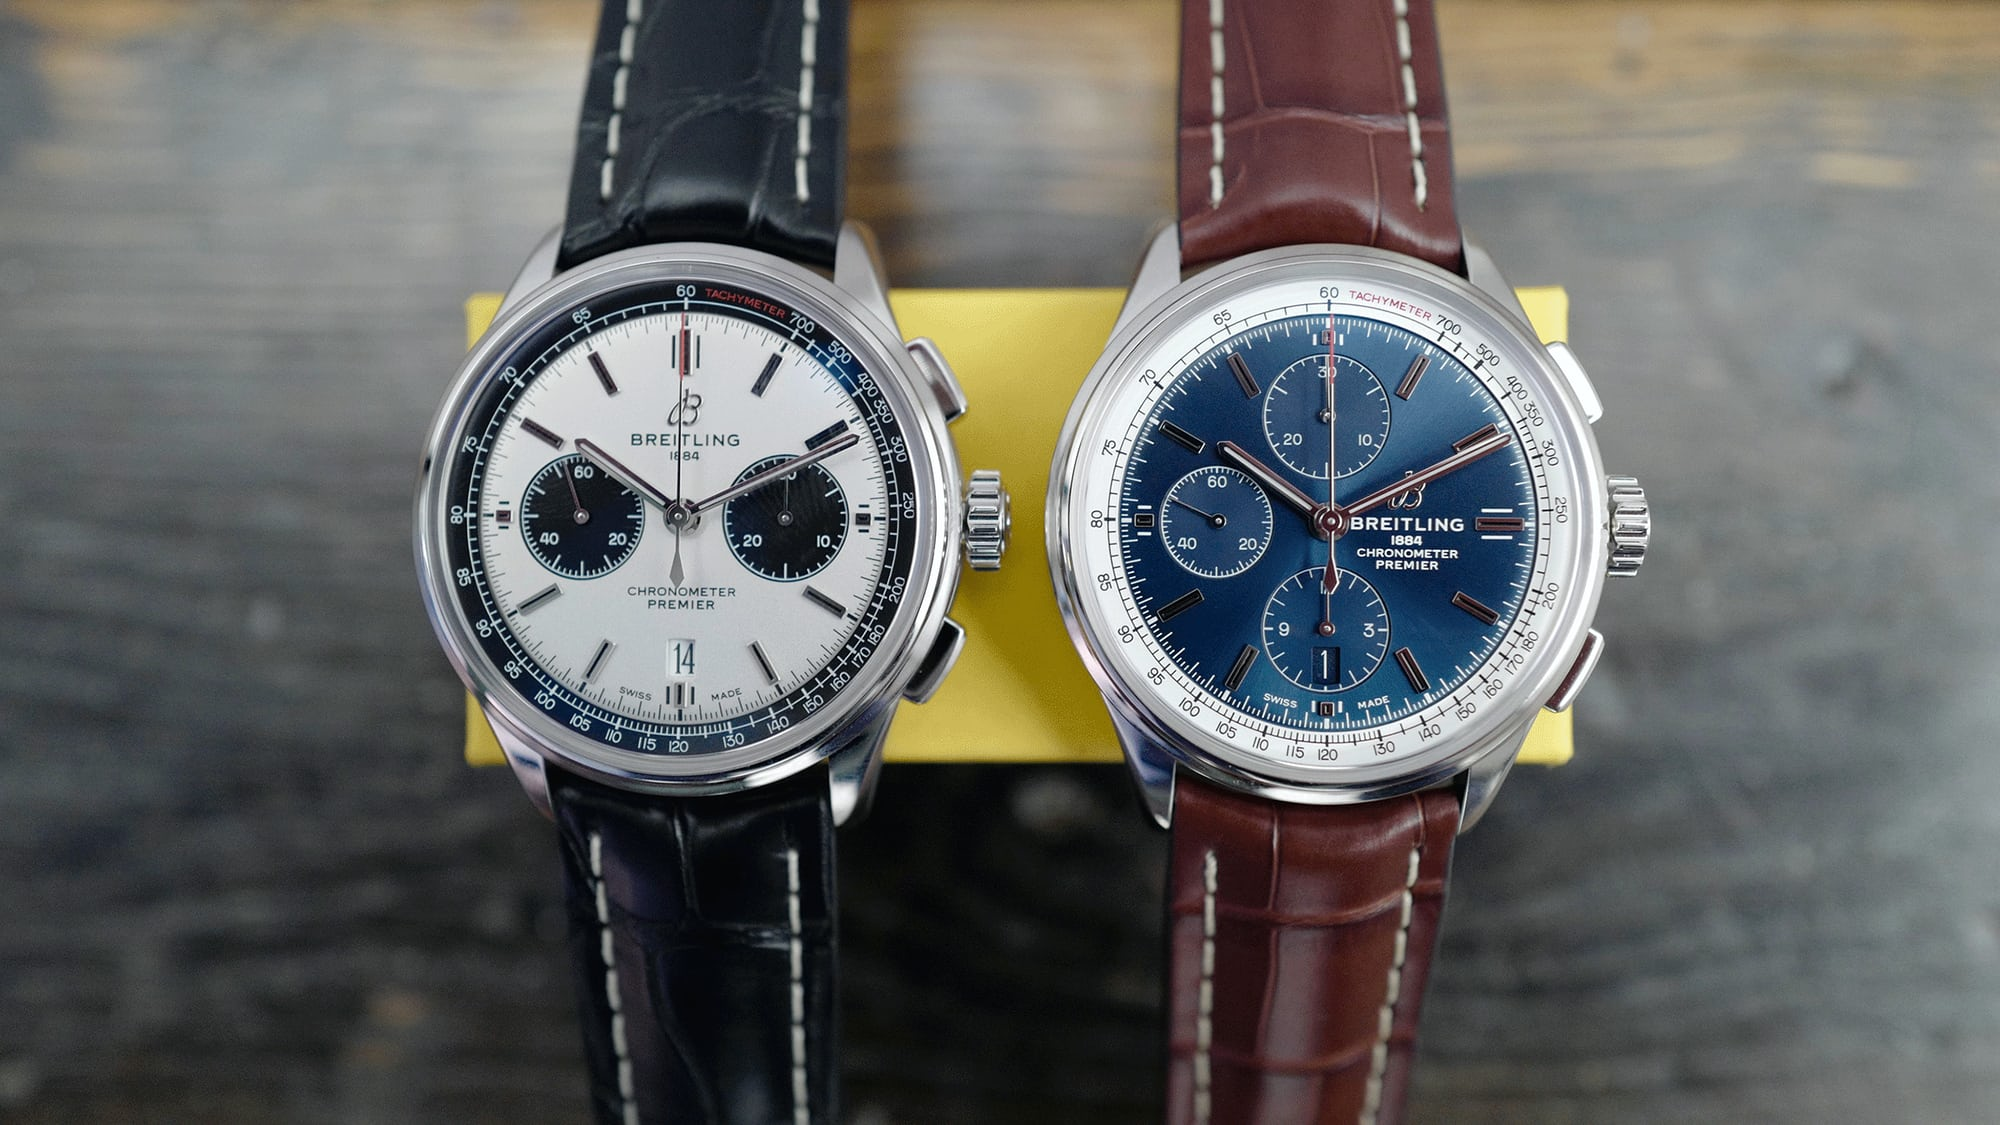 Introducing: The New Breitling Premier Collection (Live Pics & Pricing) uuuu